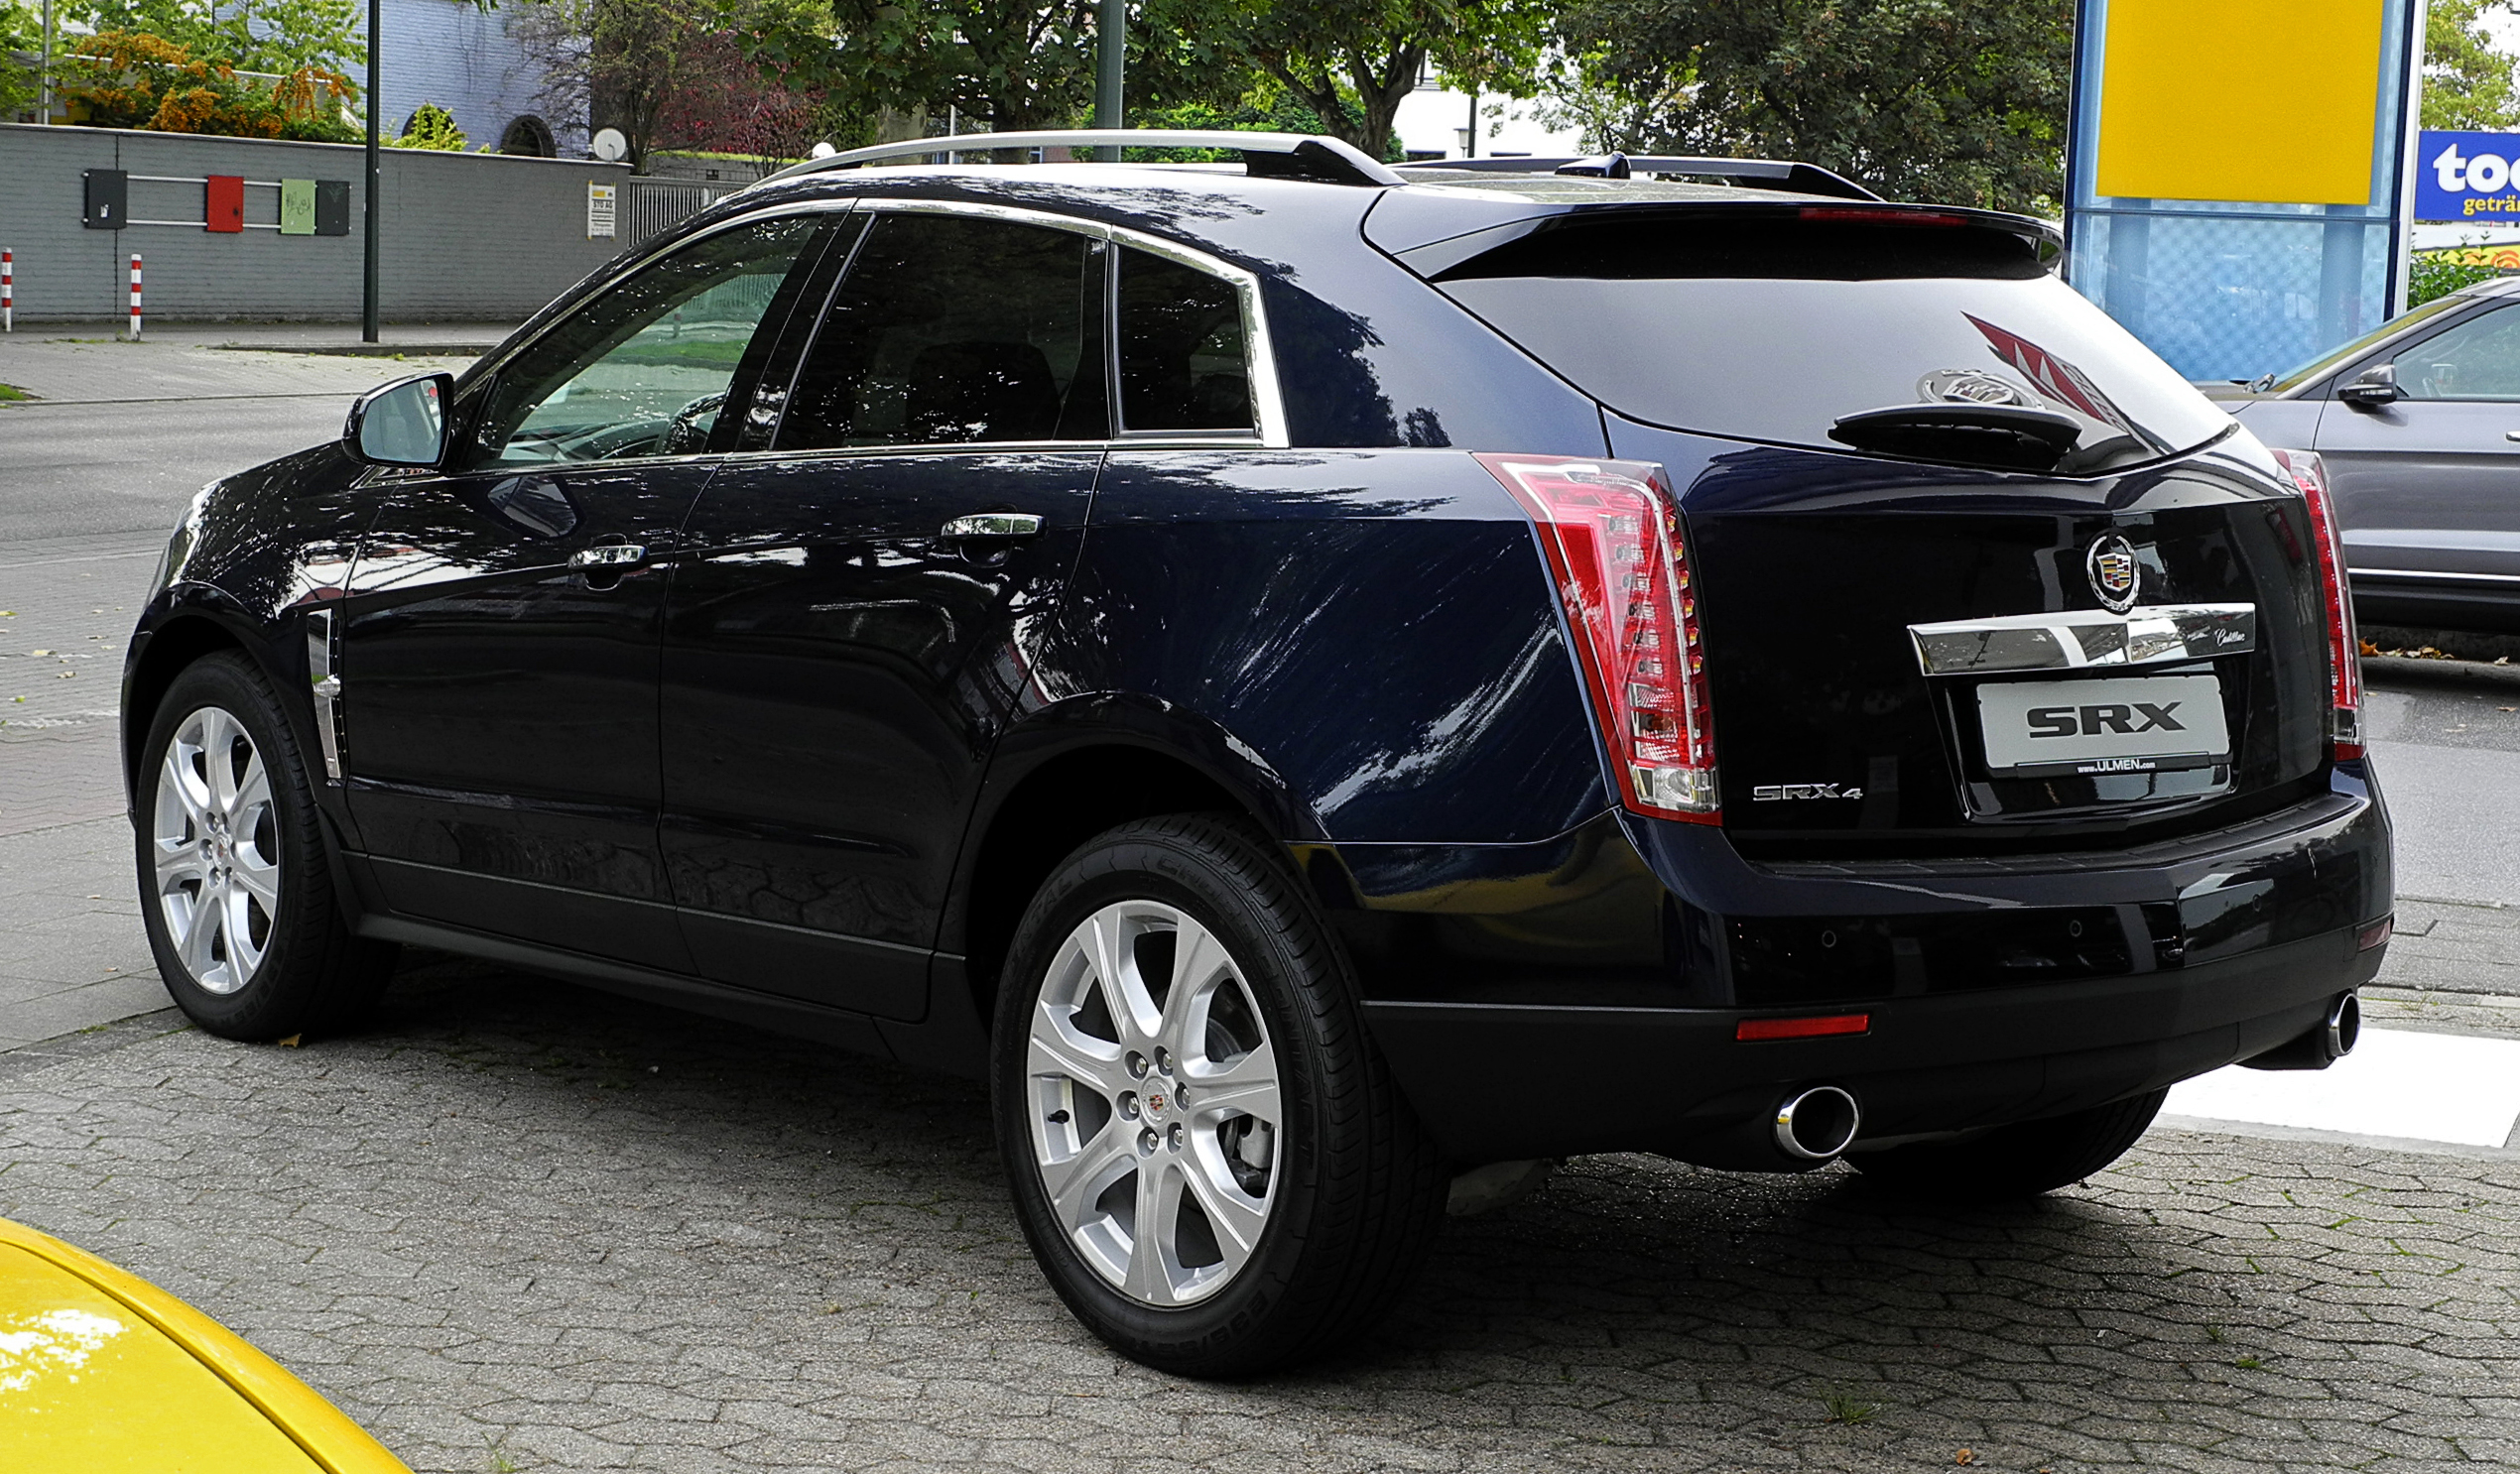 price bdeb cadillac autotrader trims reviews research options specs ca photos srx